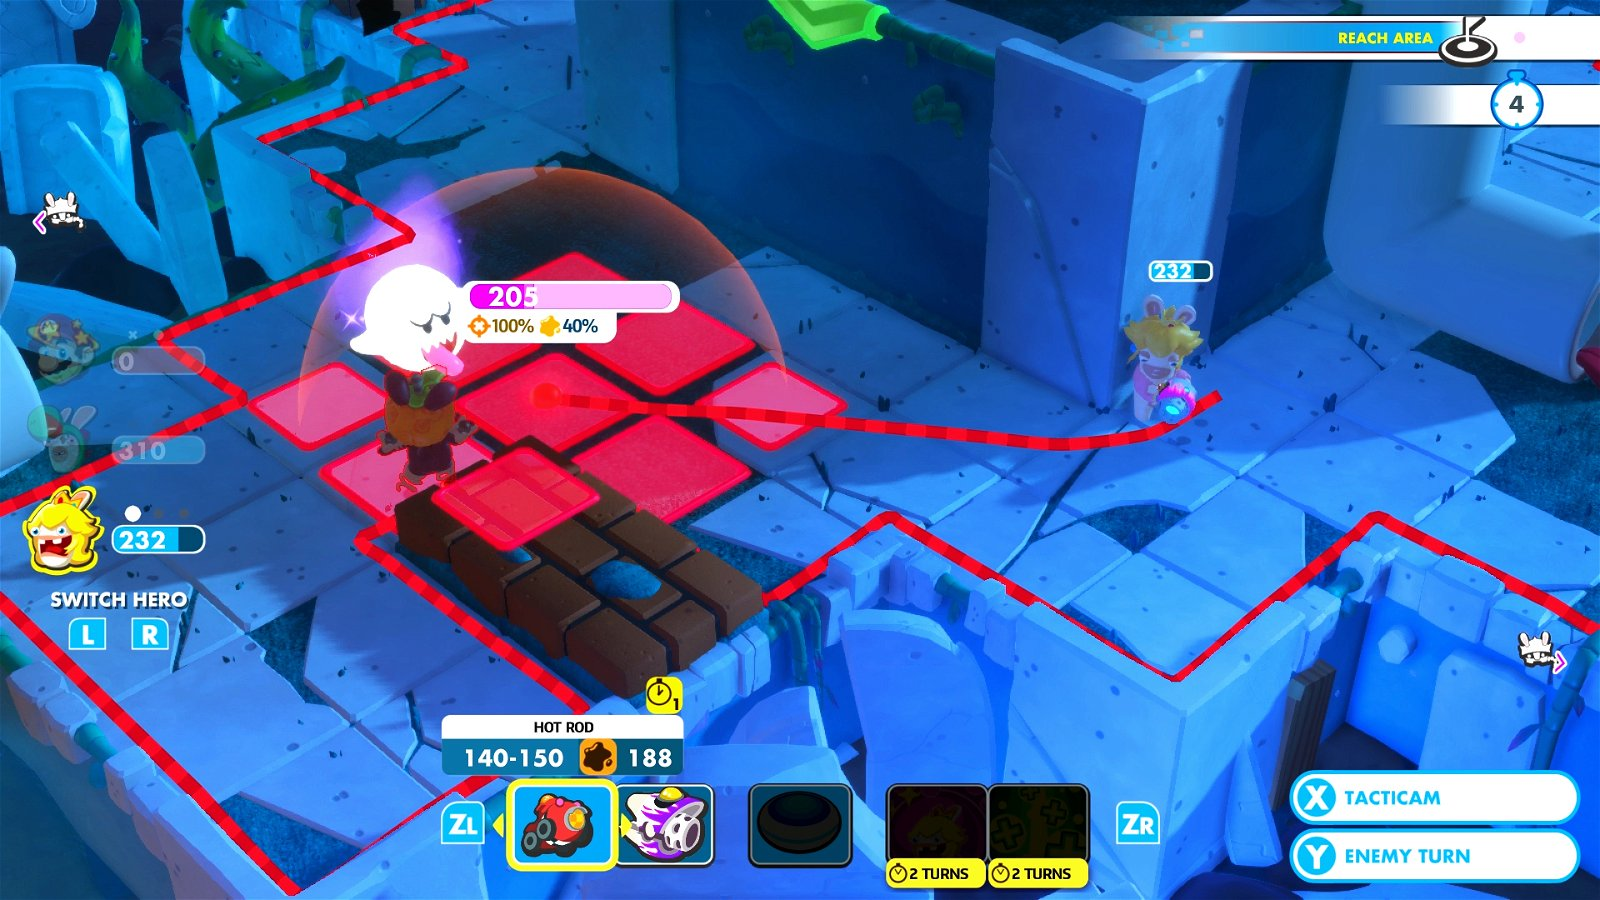 Mario + Rabbids: Kingdom Battle (Switch) Review: Engrossing Tactics & Gross-Out Humor 4